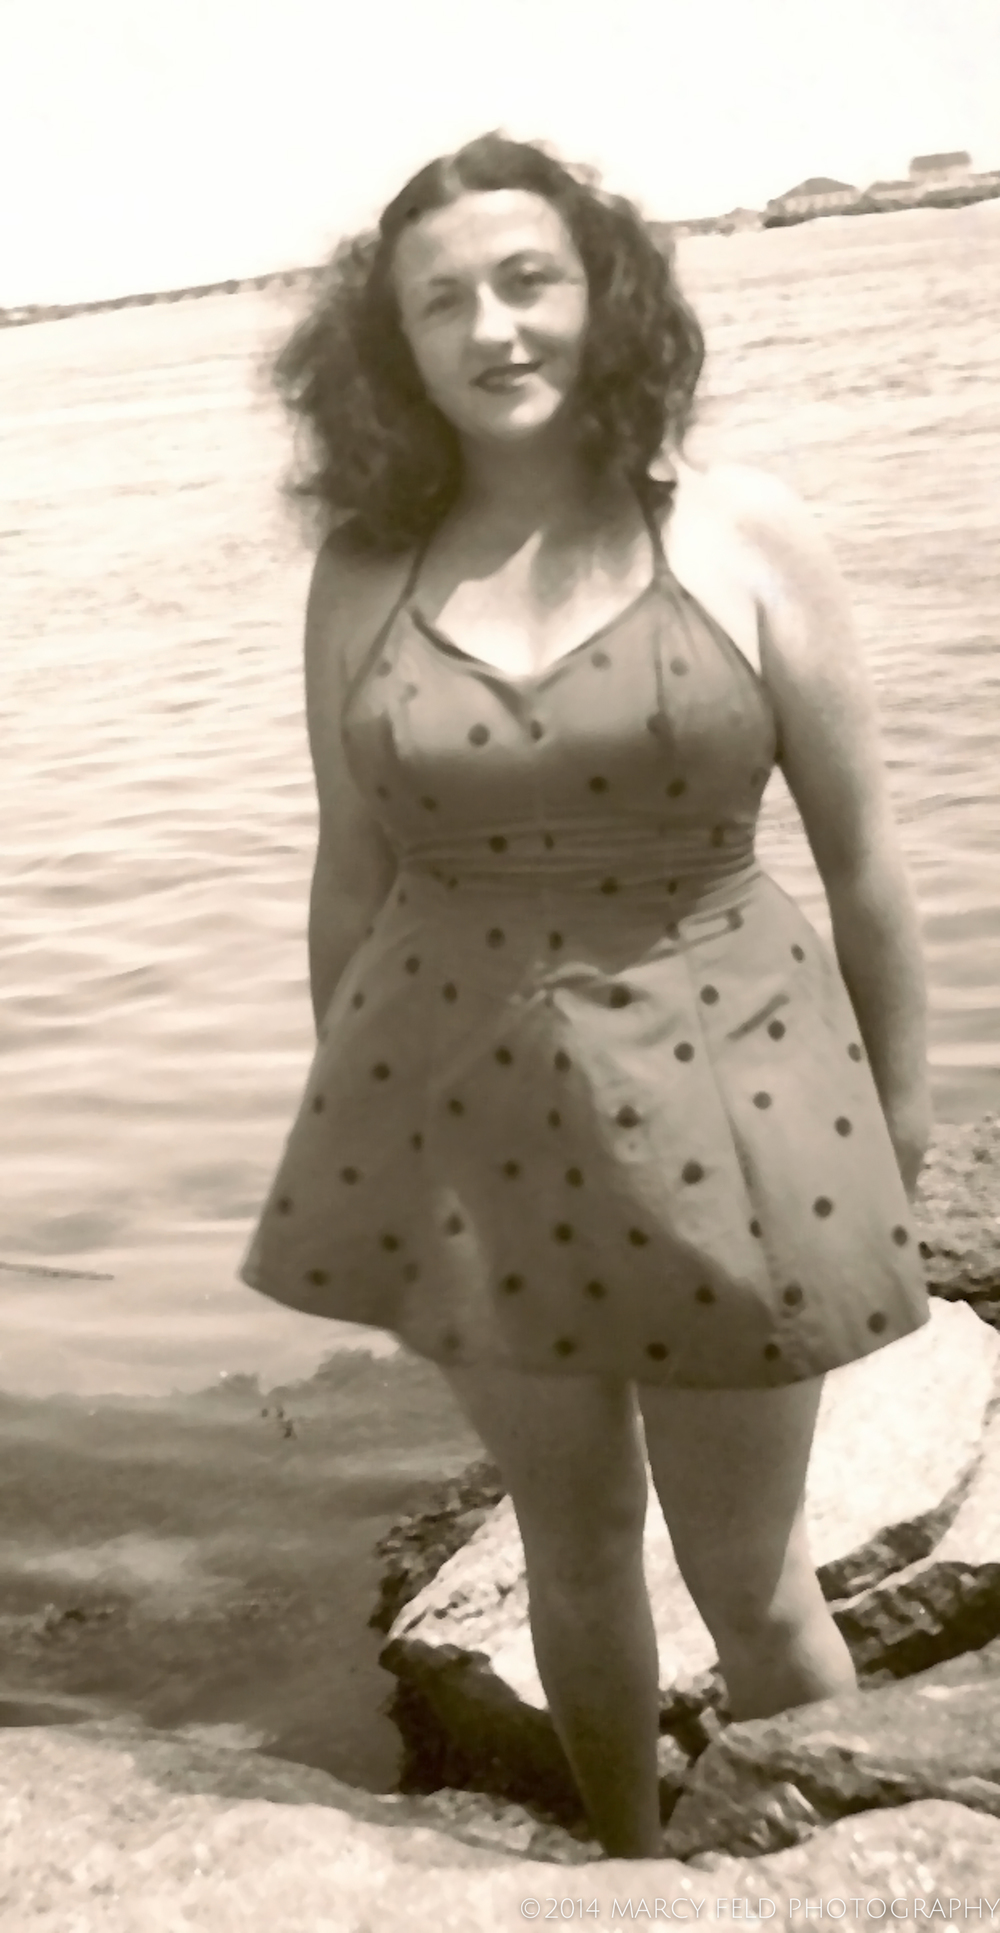 An image of my mother at the beach - perhaps from sometime in the 1940's.  I originally thought it was in Edgemere, but when I actually looked closely, I think it is in Far Rockaway with the Atlantic Beach Bridge in the background